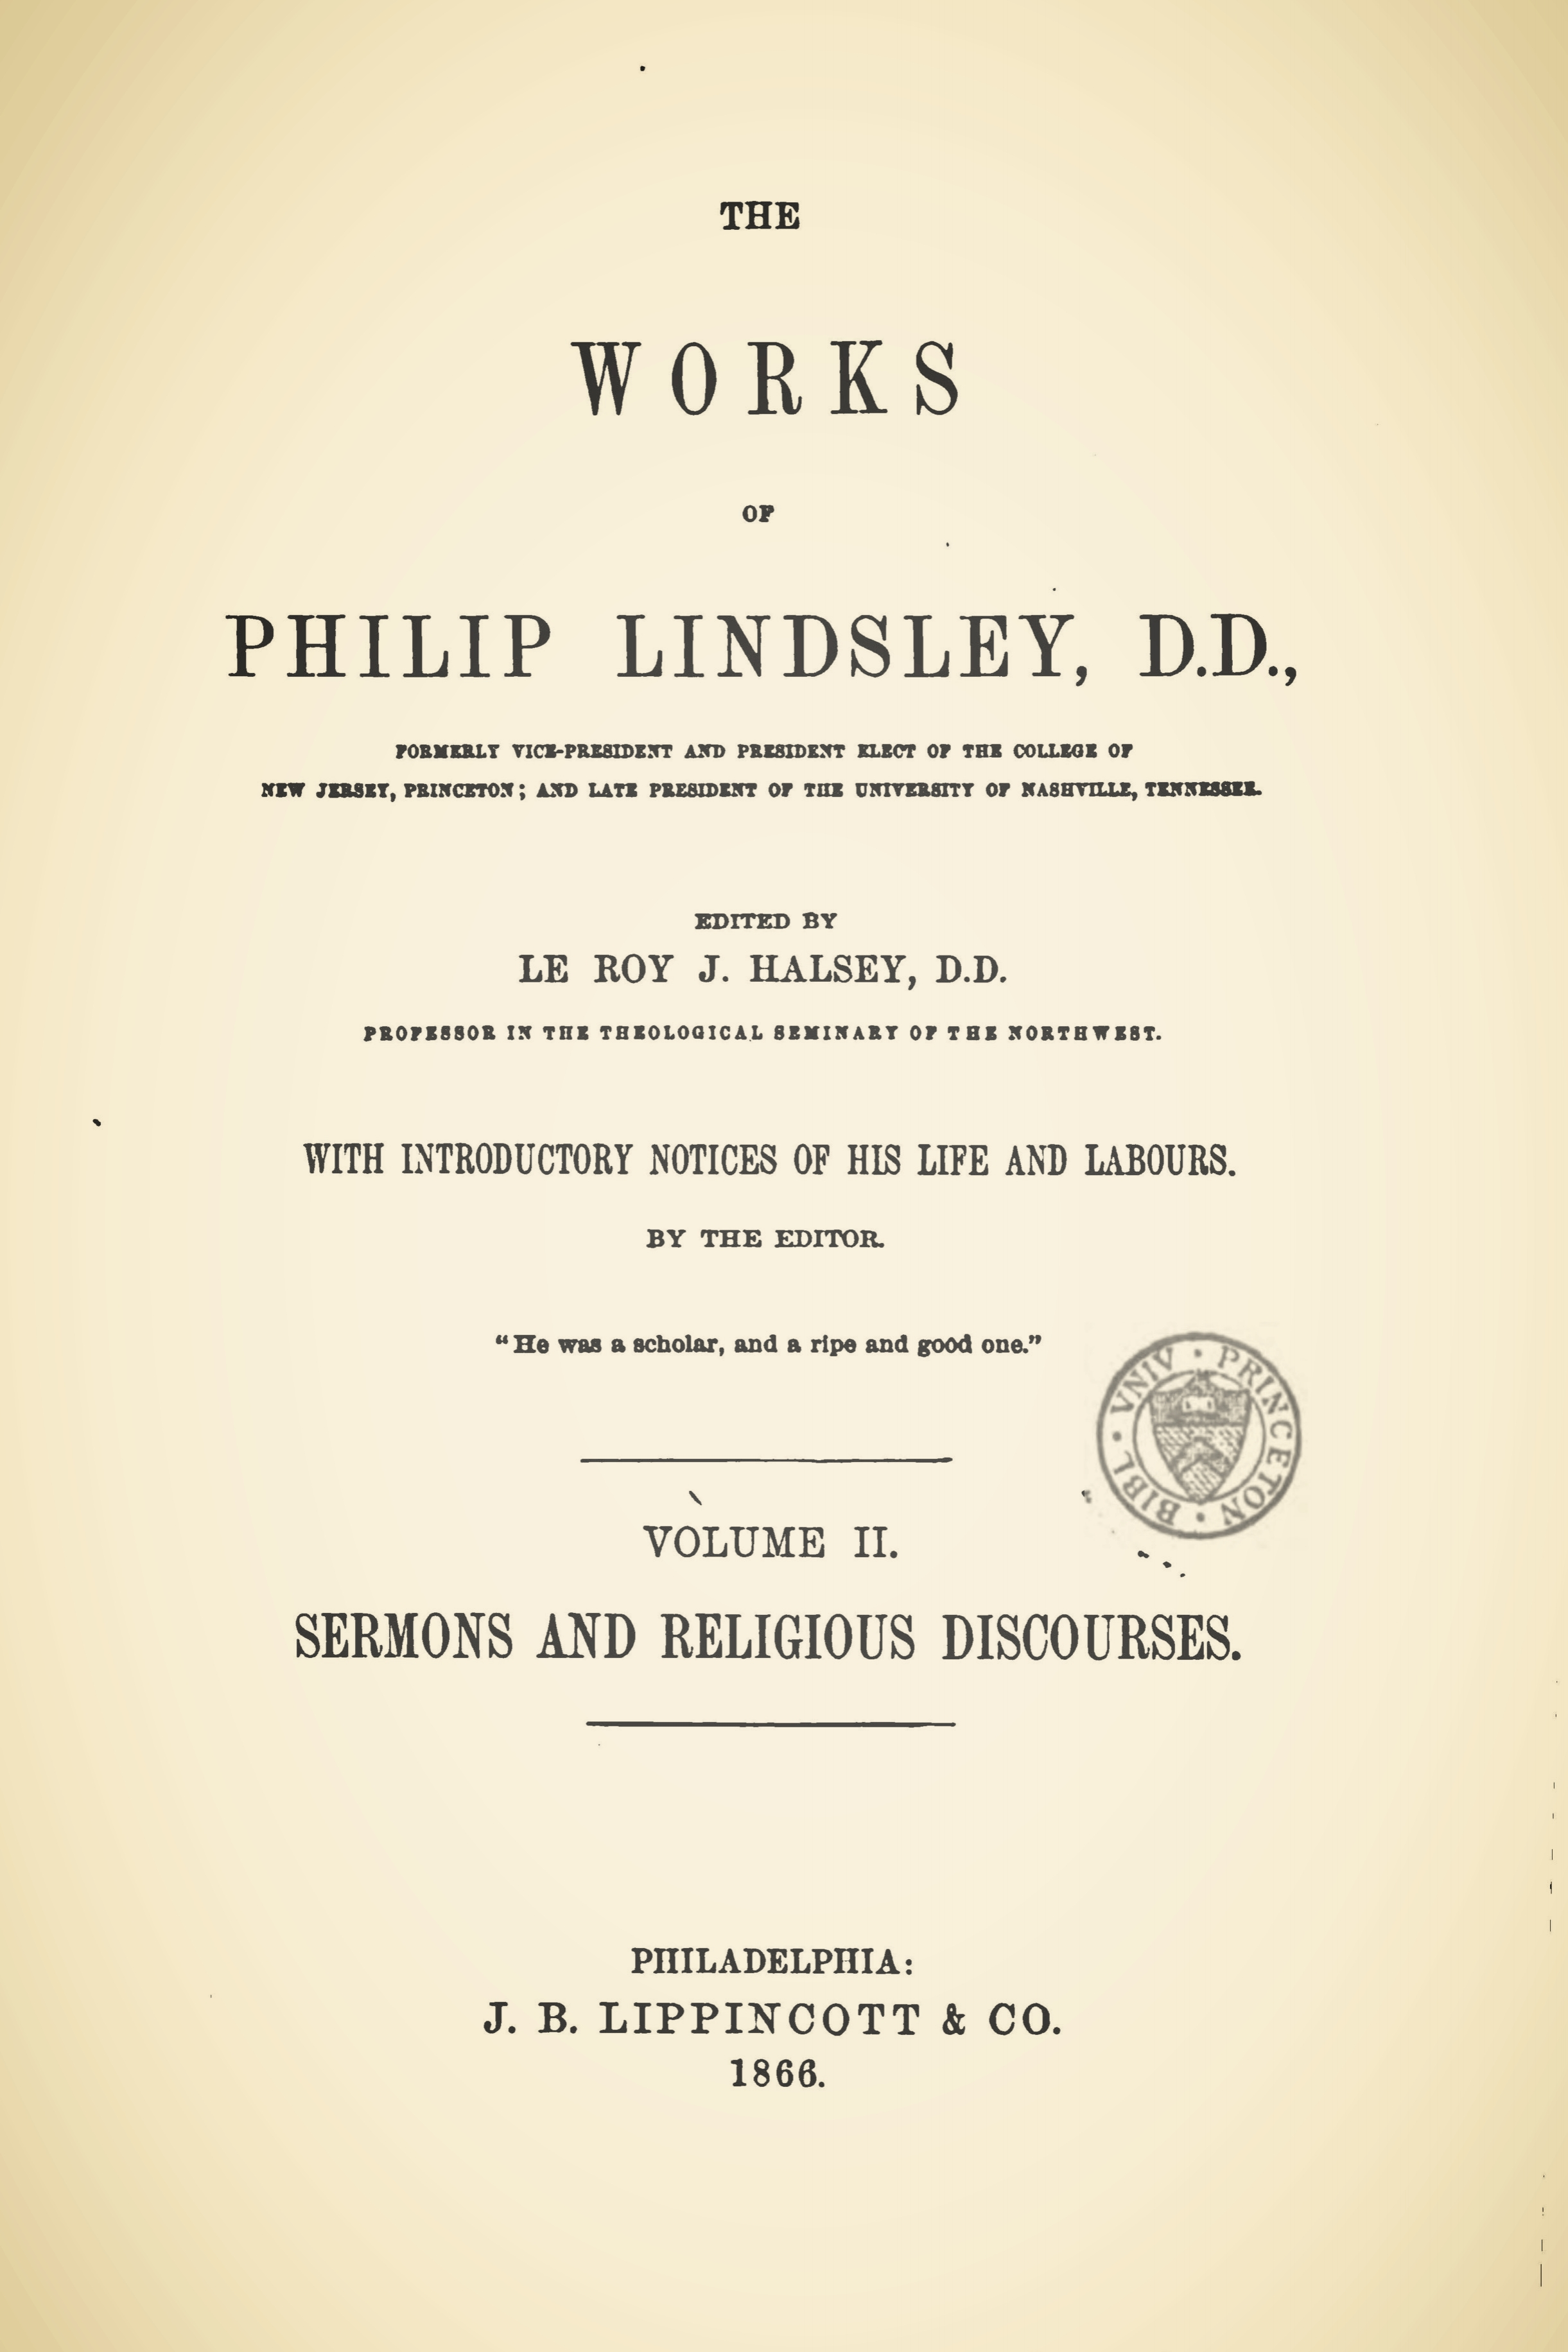 Lindsley, Philip, The Works of Philip Lindsley, Vol. 2 Title Page.jpg